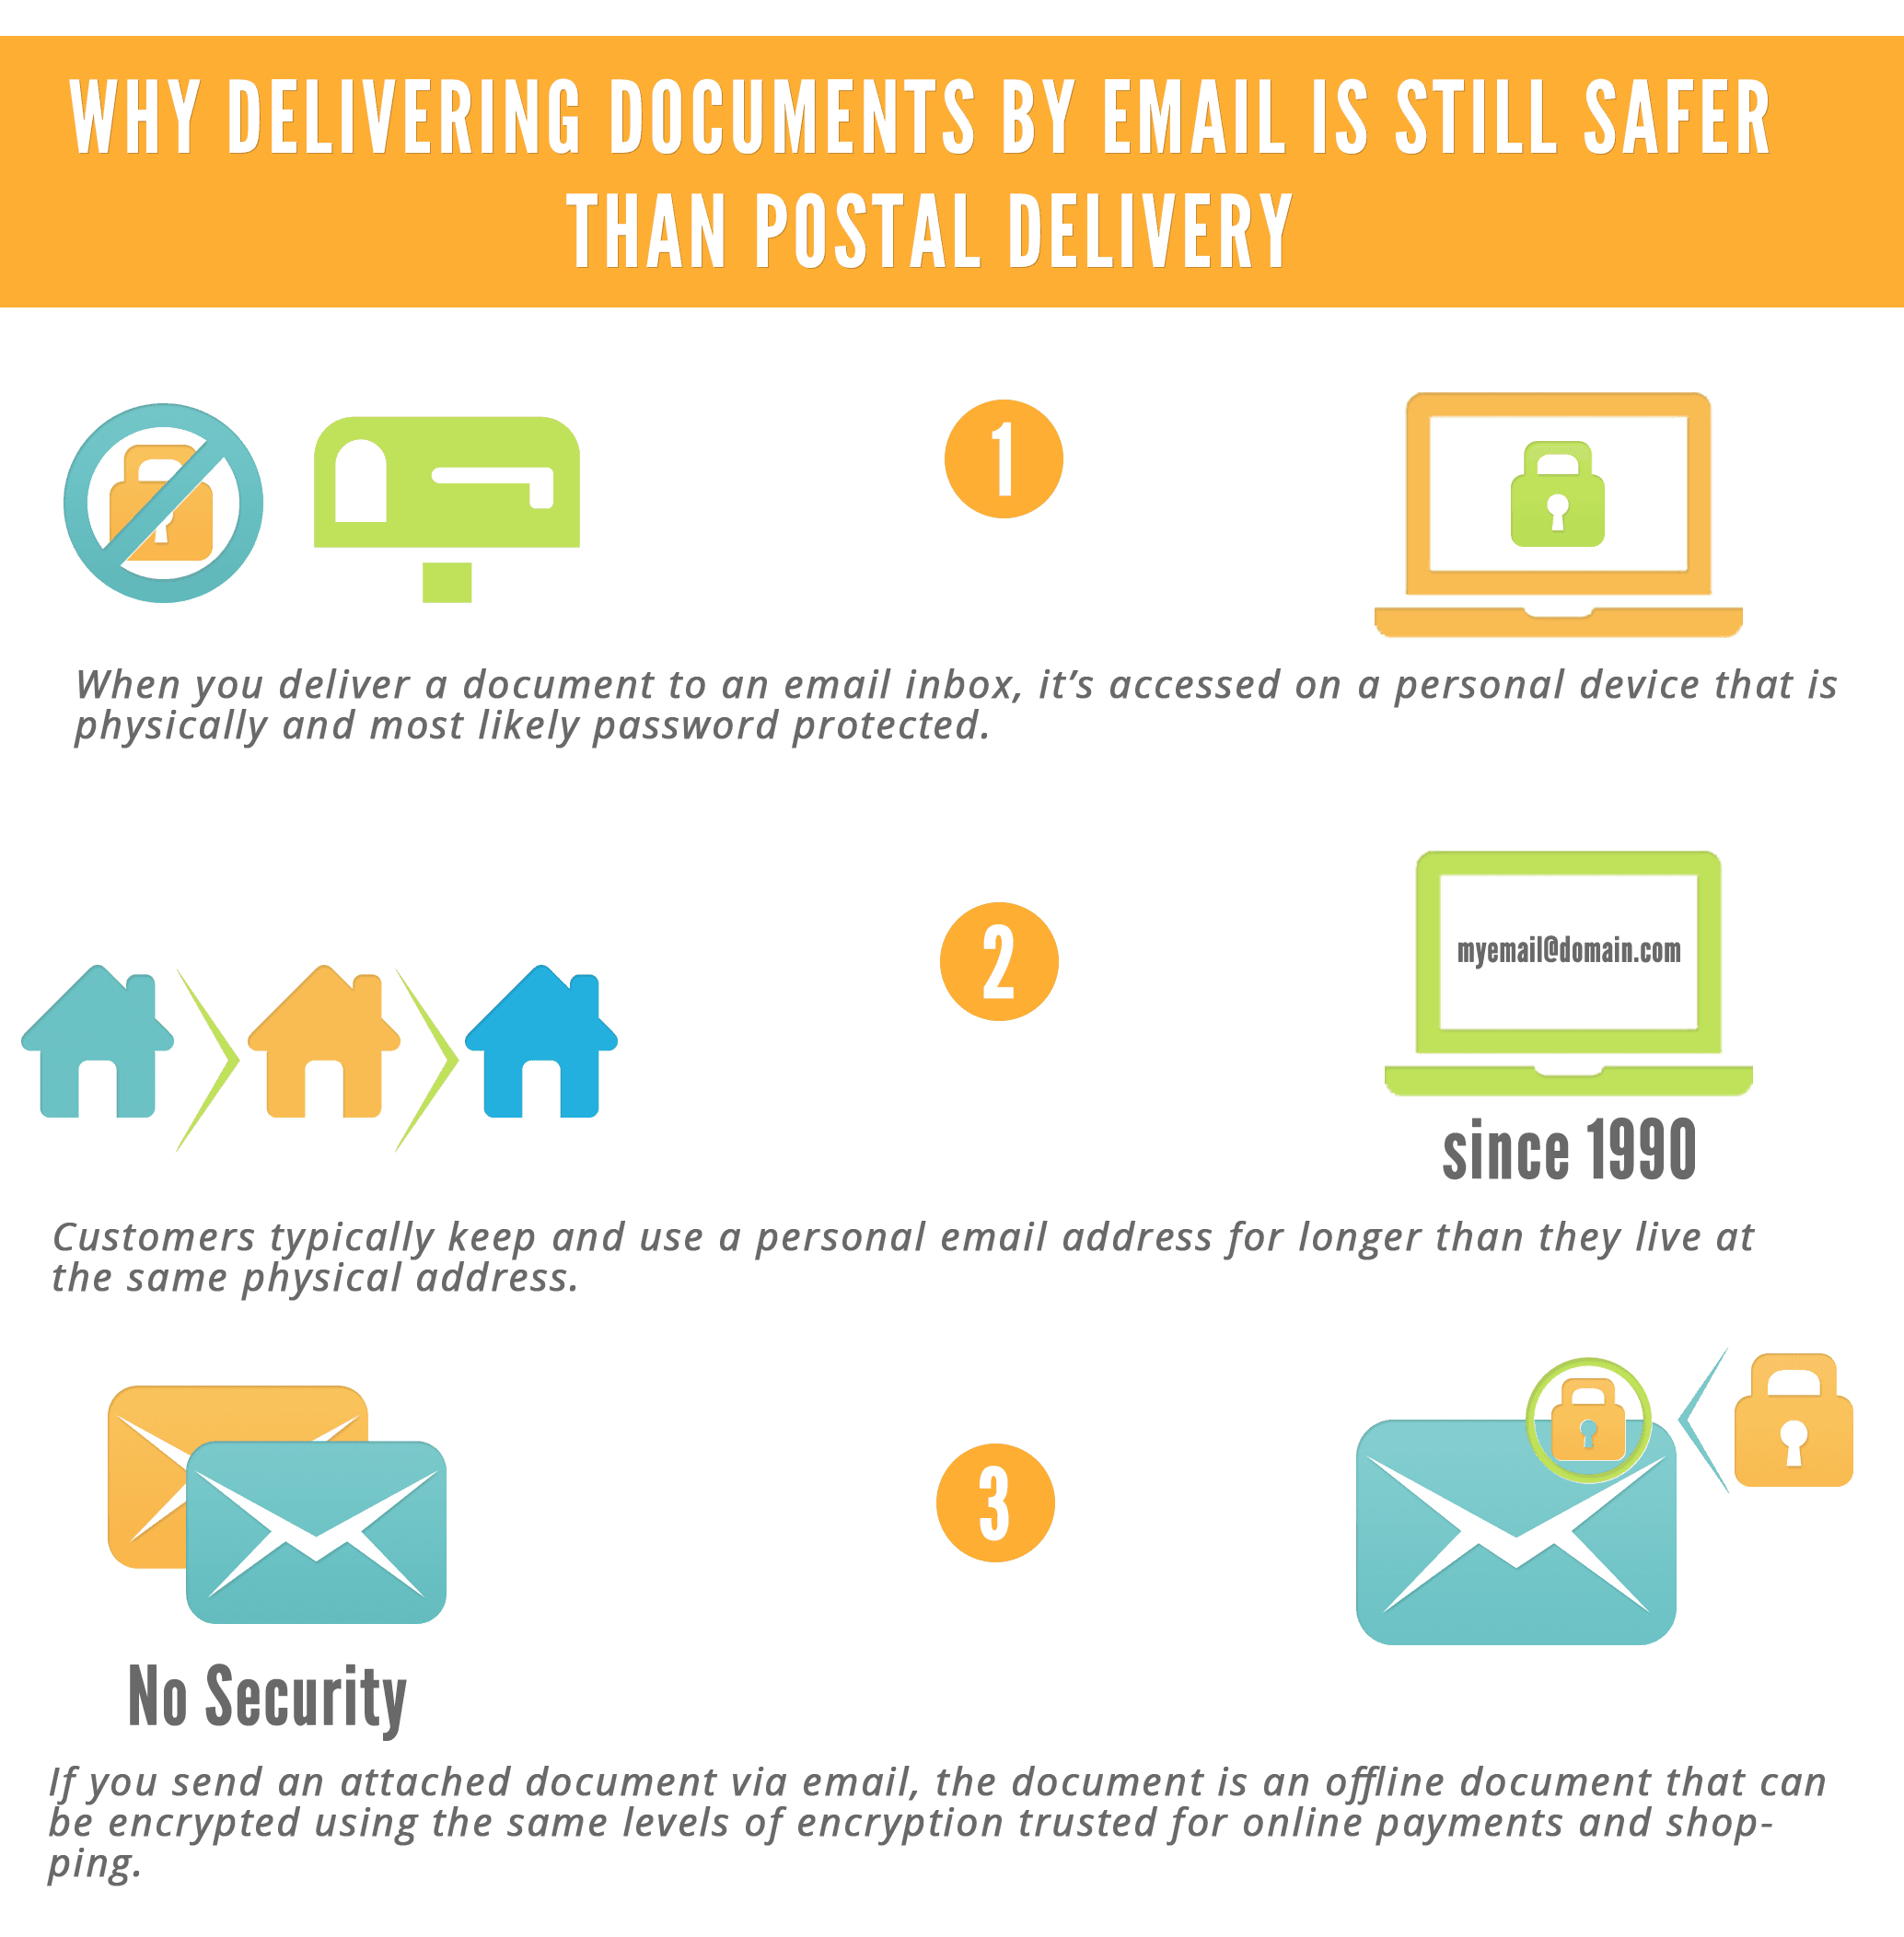 Why Delivering Documents By Email Is Still Safer Than Postal Delivery